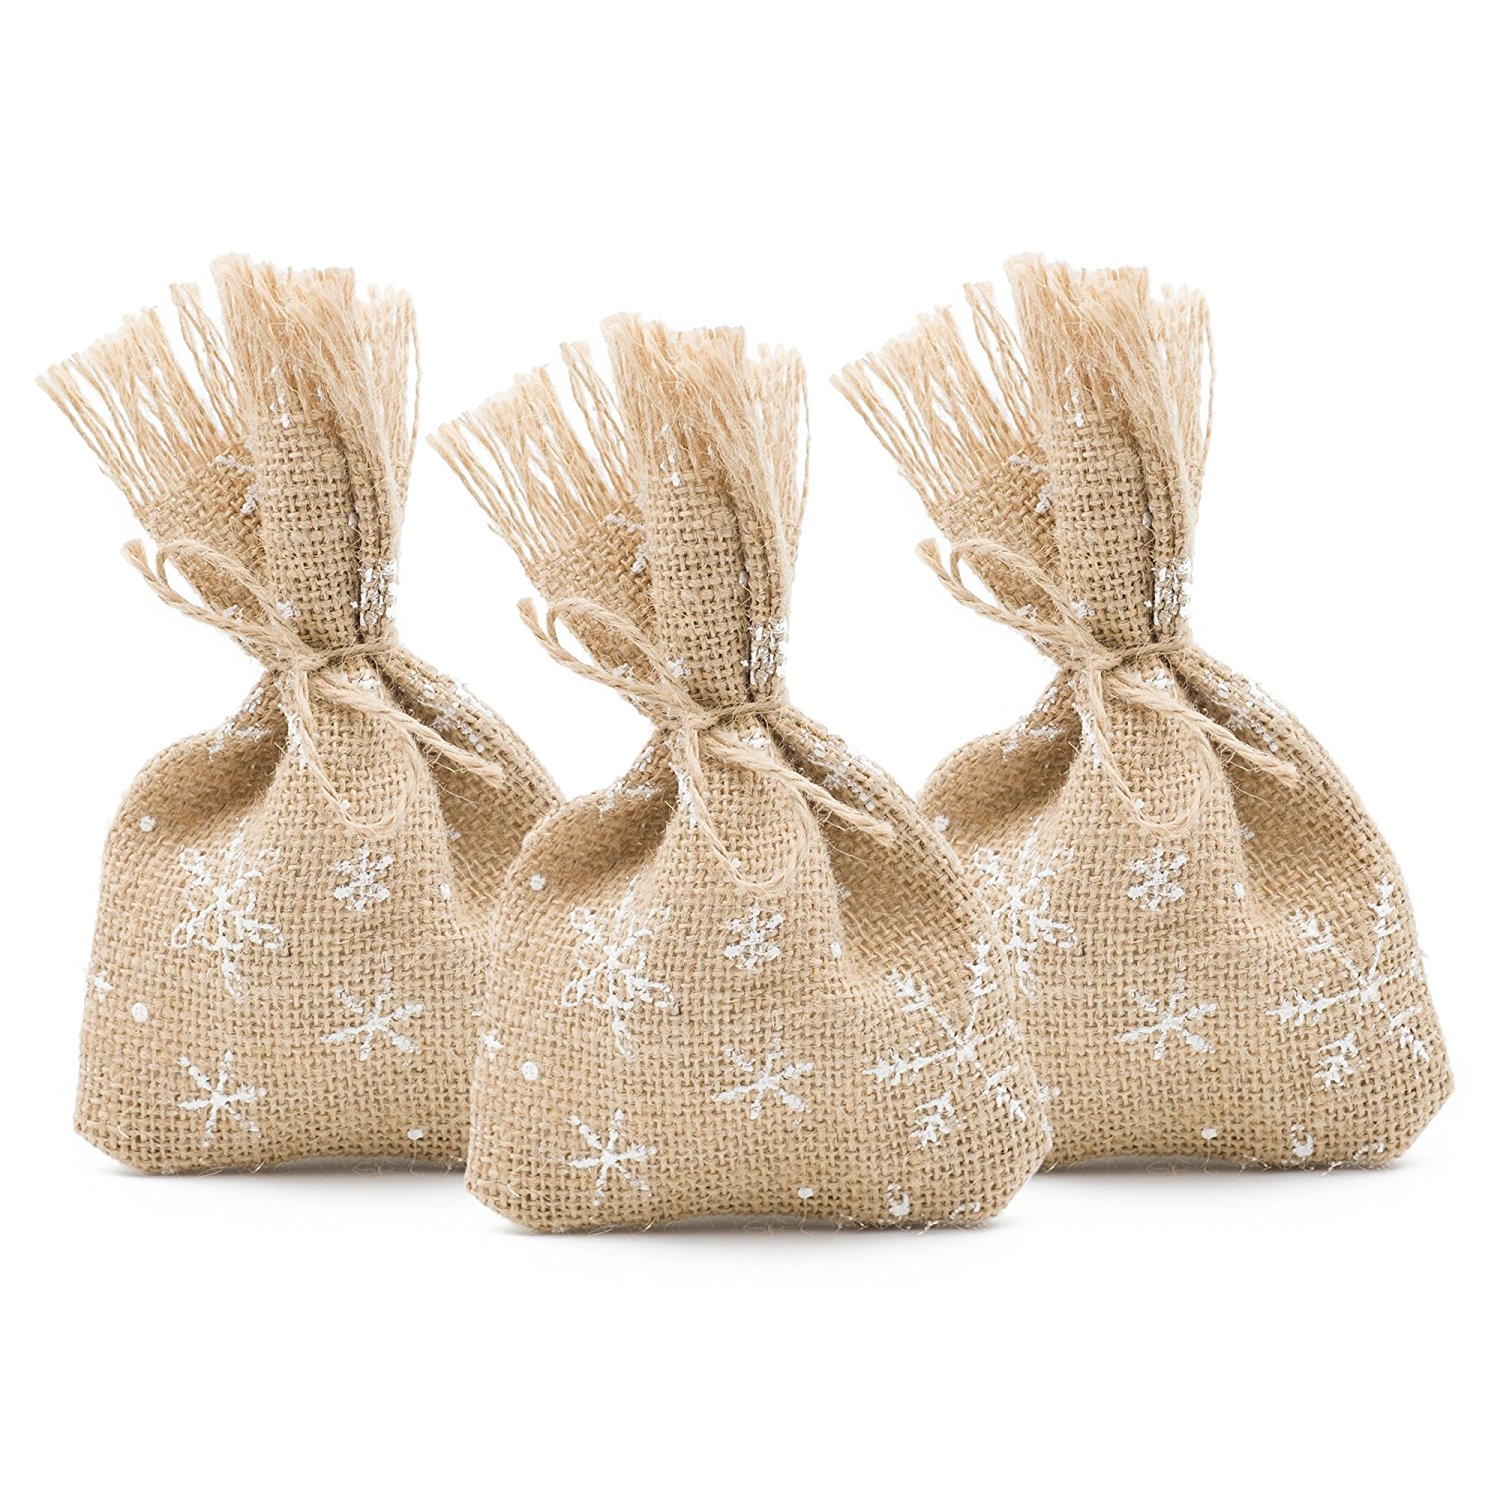 25 Christmas Favor Gift Bags Burlap and White Snowflakes, 4 x 6 Inch, Winter Party Decorations (White Snowflakes)